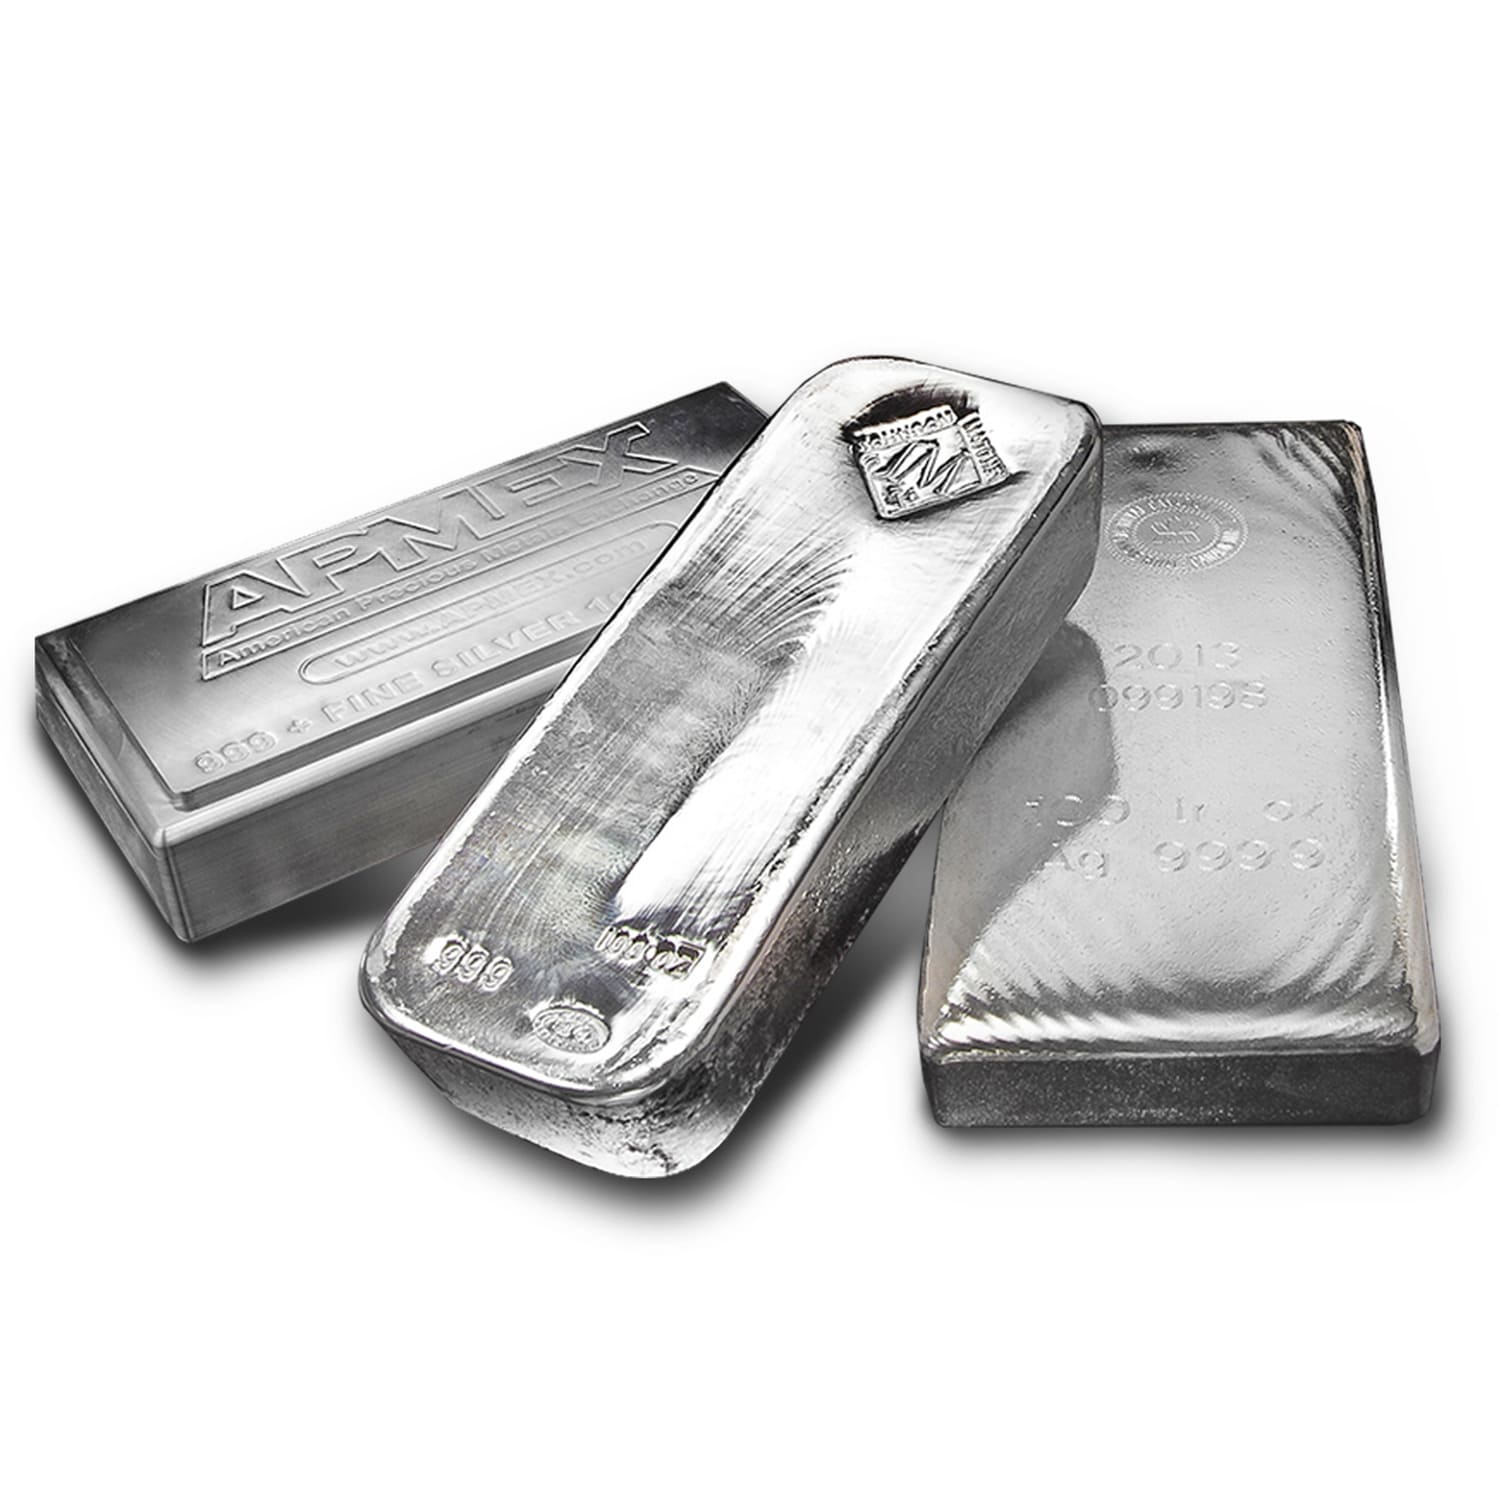 101.50 oz Silver Bar - Secondary Market